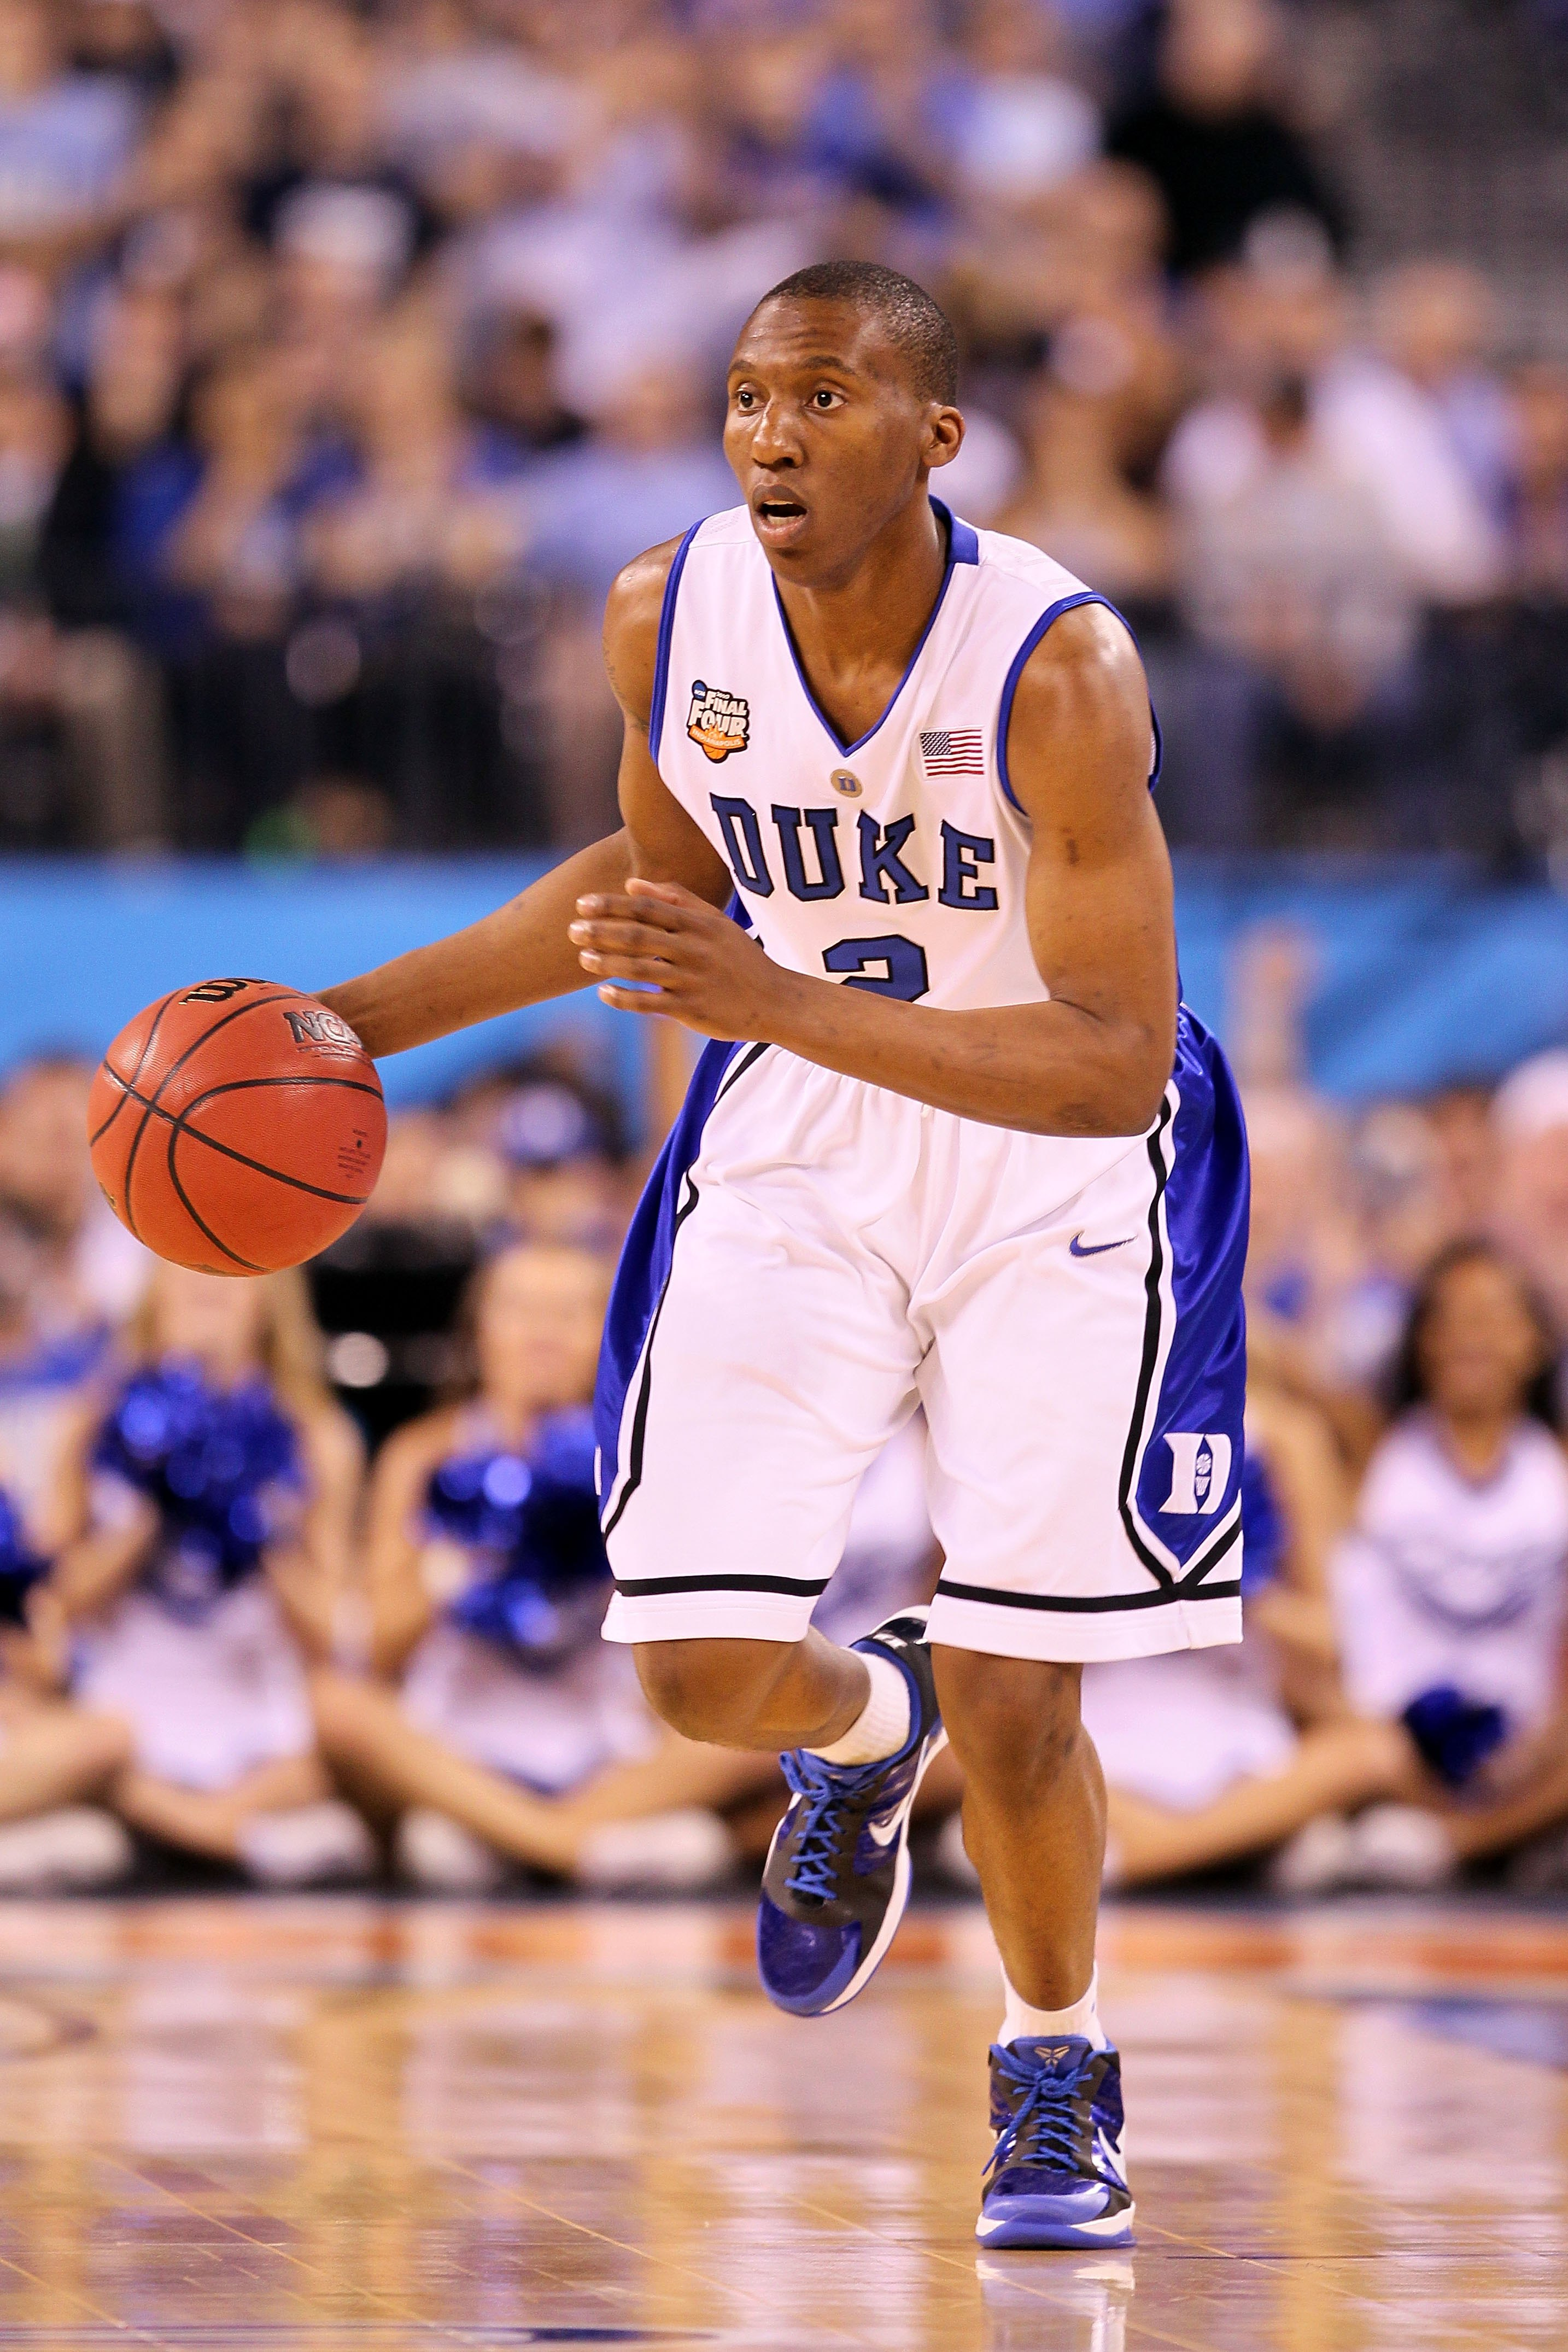 INDIANAPOLIS - APRIL 05:  Nolan Smith #2 of the Duke Blue Devils brings the ball up court against the Butler Bulldogs during the 2010 NCAA Division I Men's Basketball National Championship game at Lucas Oil Stadium on April 5, 2010 in Indianapolis, Indian